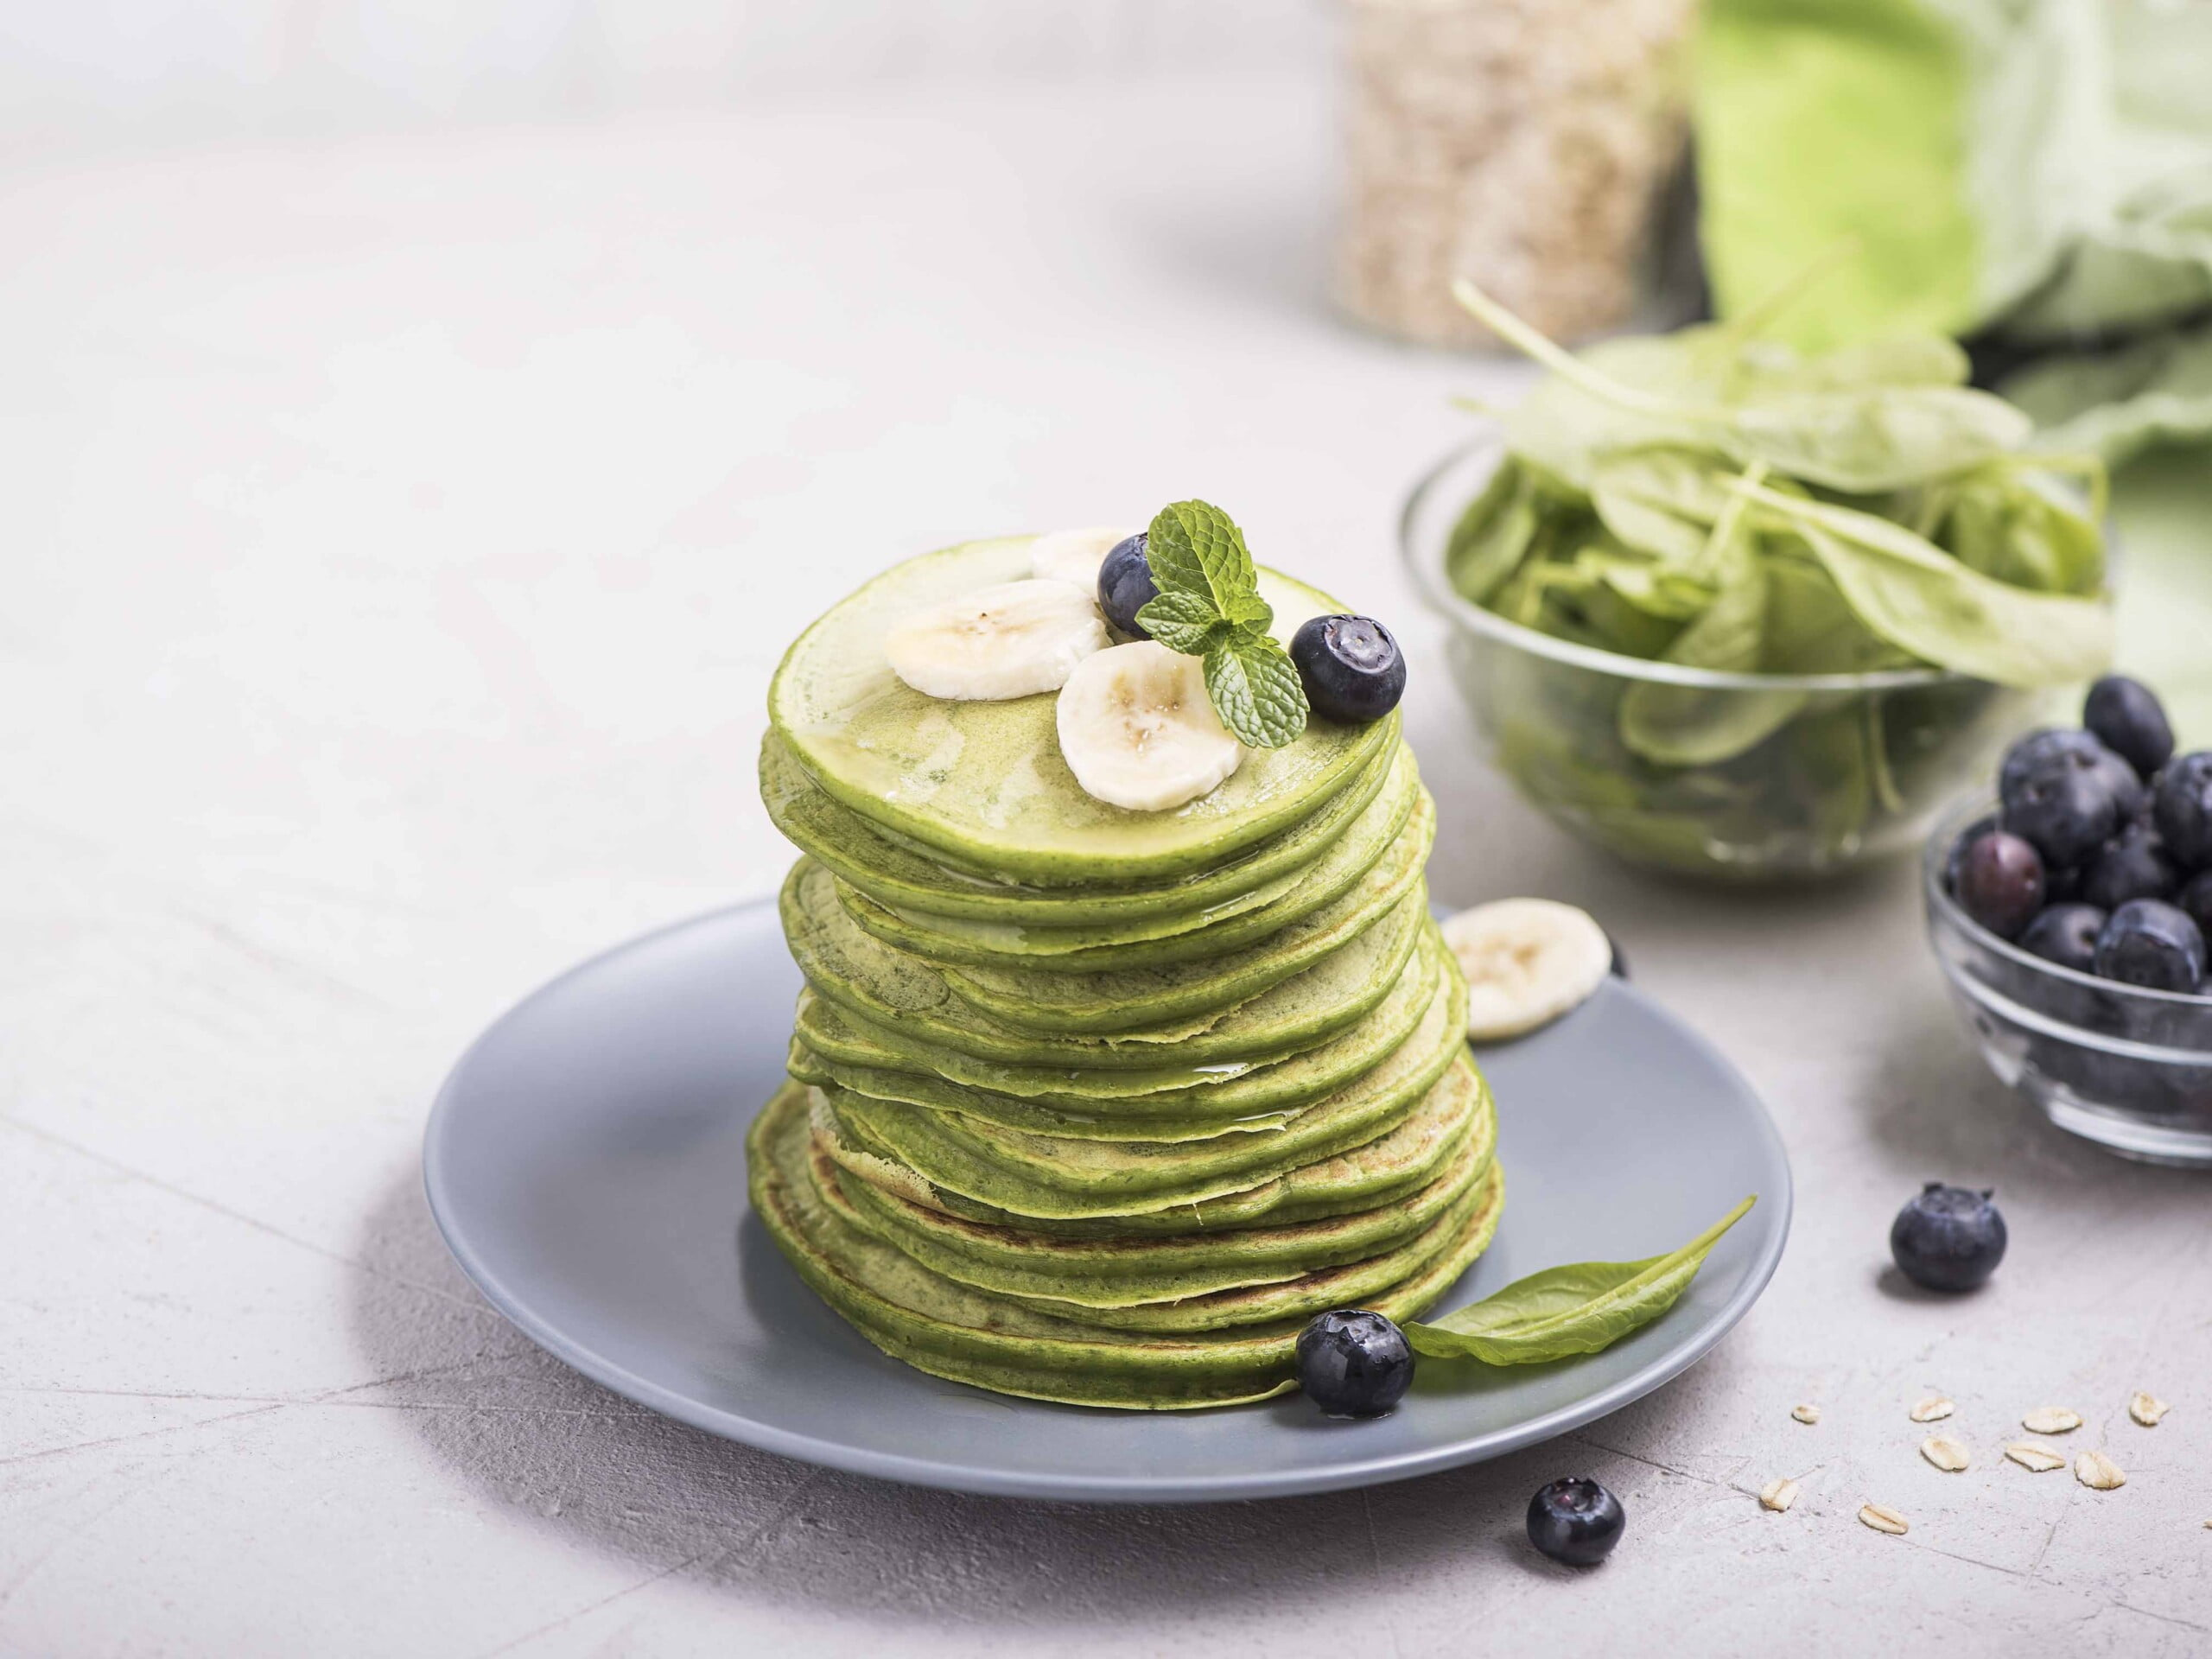 Green Spinach Pancakes with topping